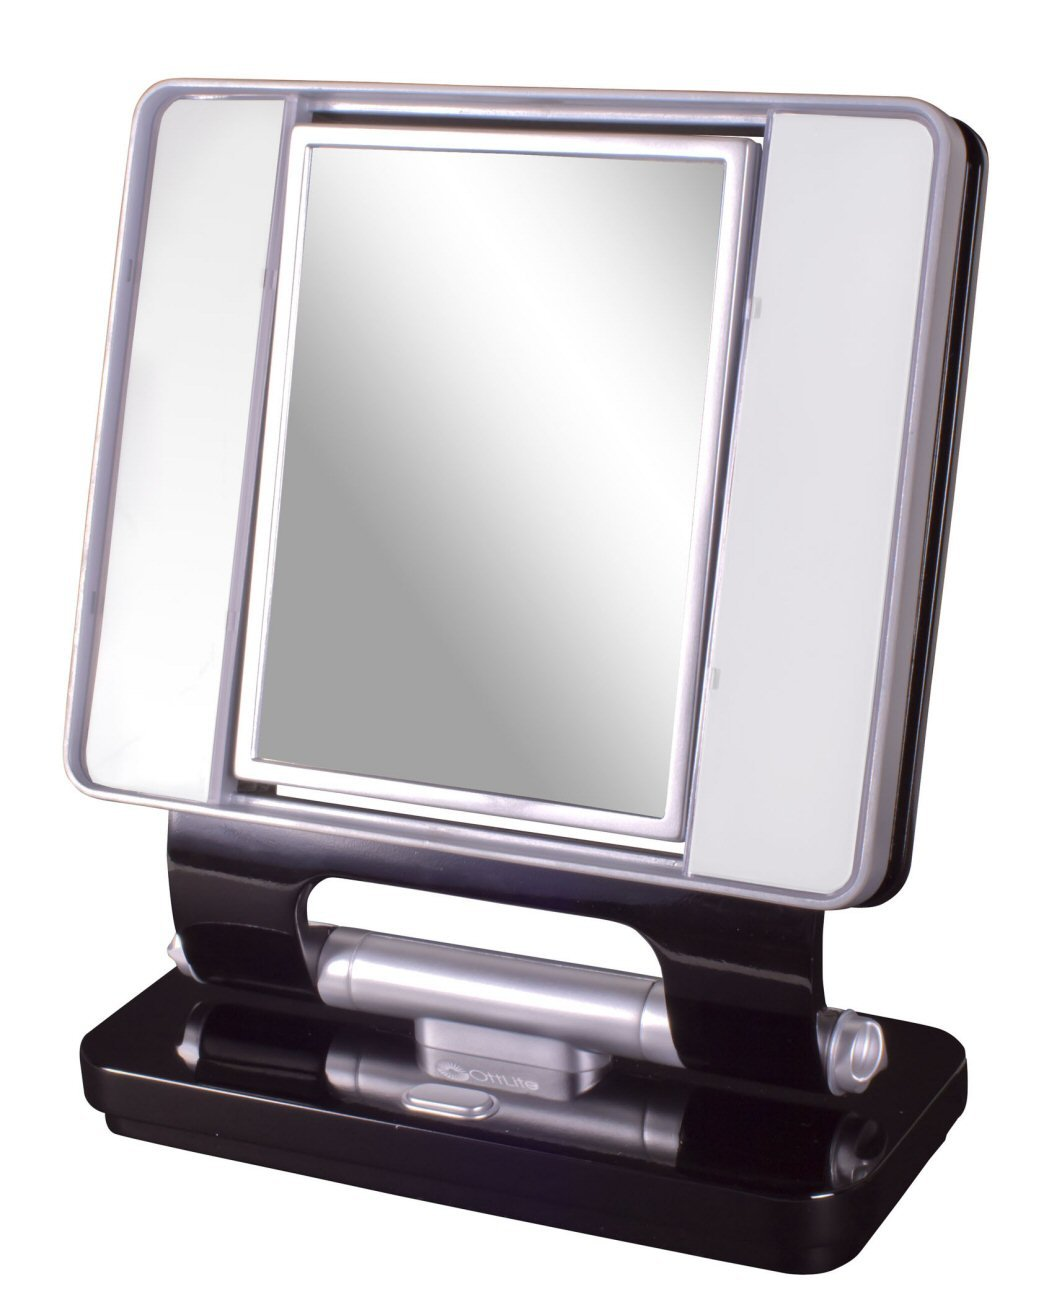 Ottlite Natural Daylight Makeup Mirror 5x 1x Magnification 26w Dual Sided- Black